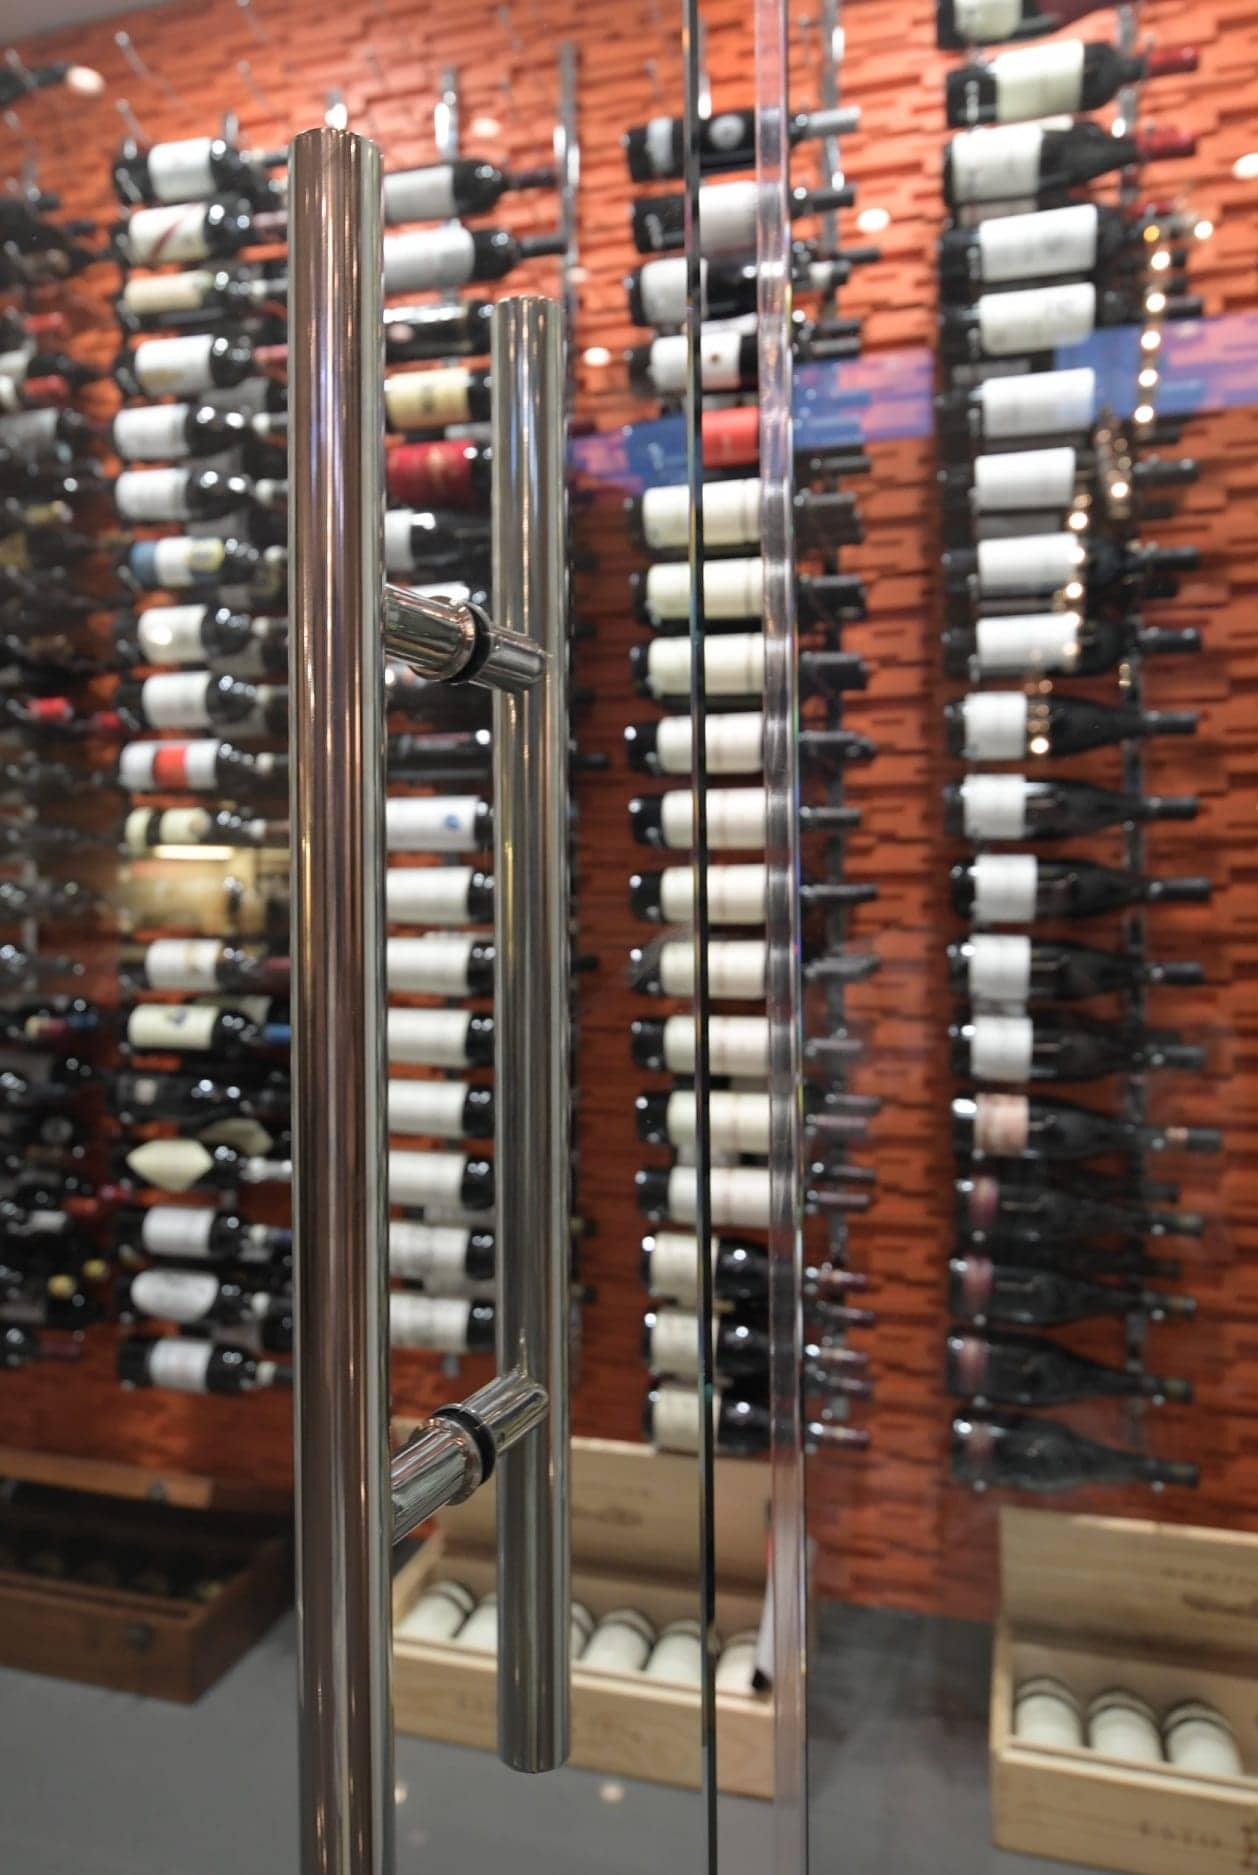 Gasket was place at the doors to seal the wine cellar when the door is closed.